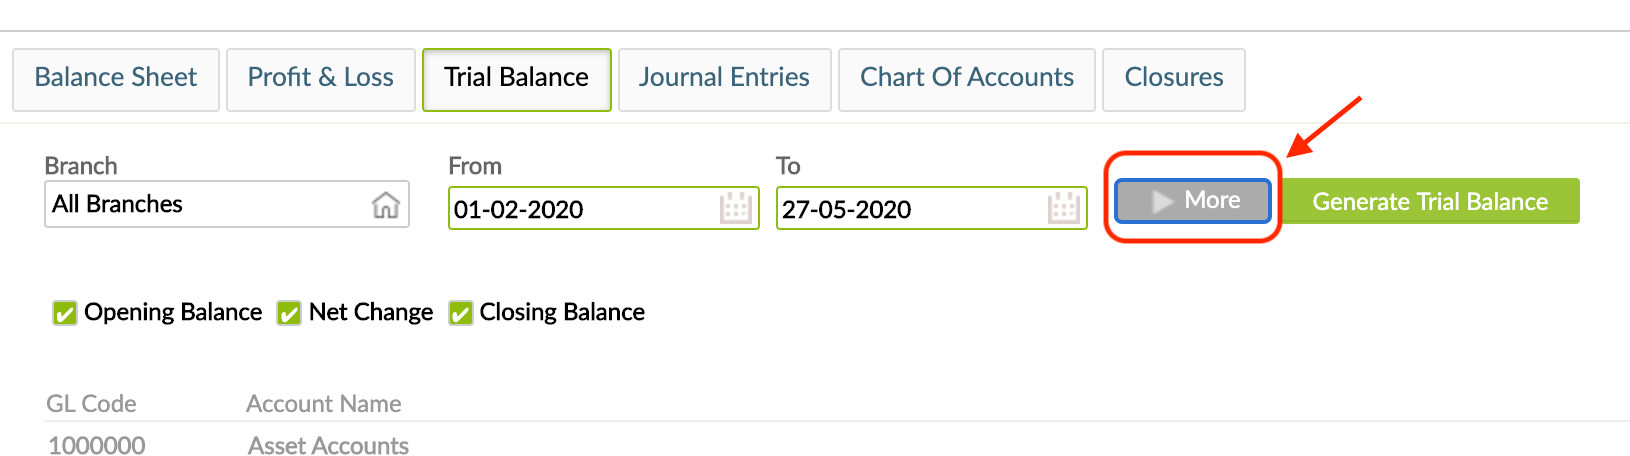 Show more options for Balance Sheet